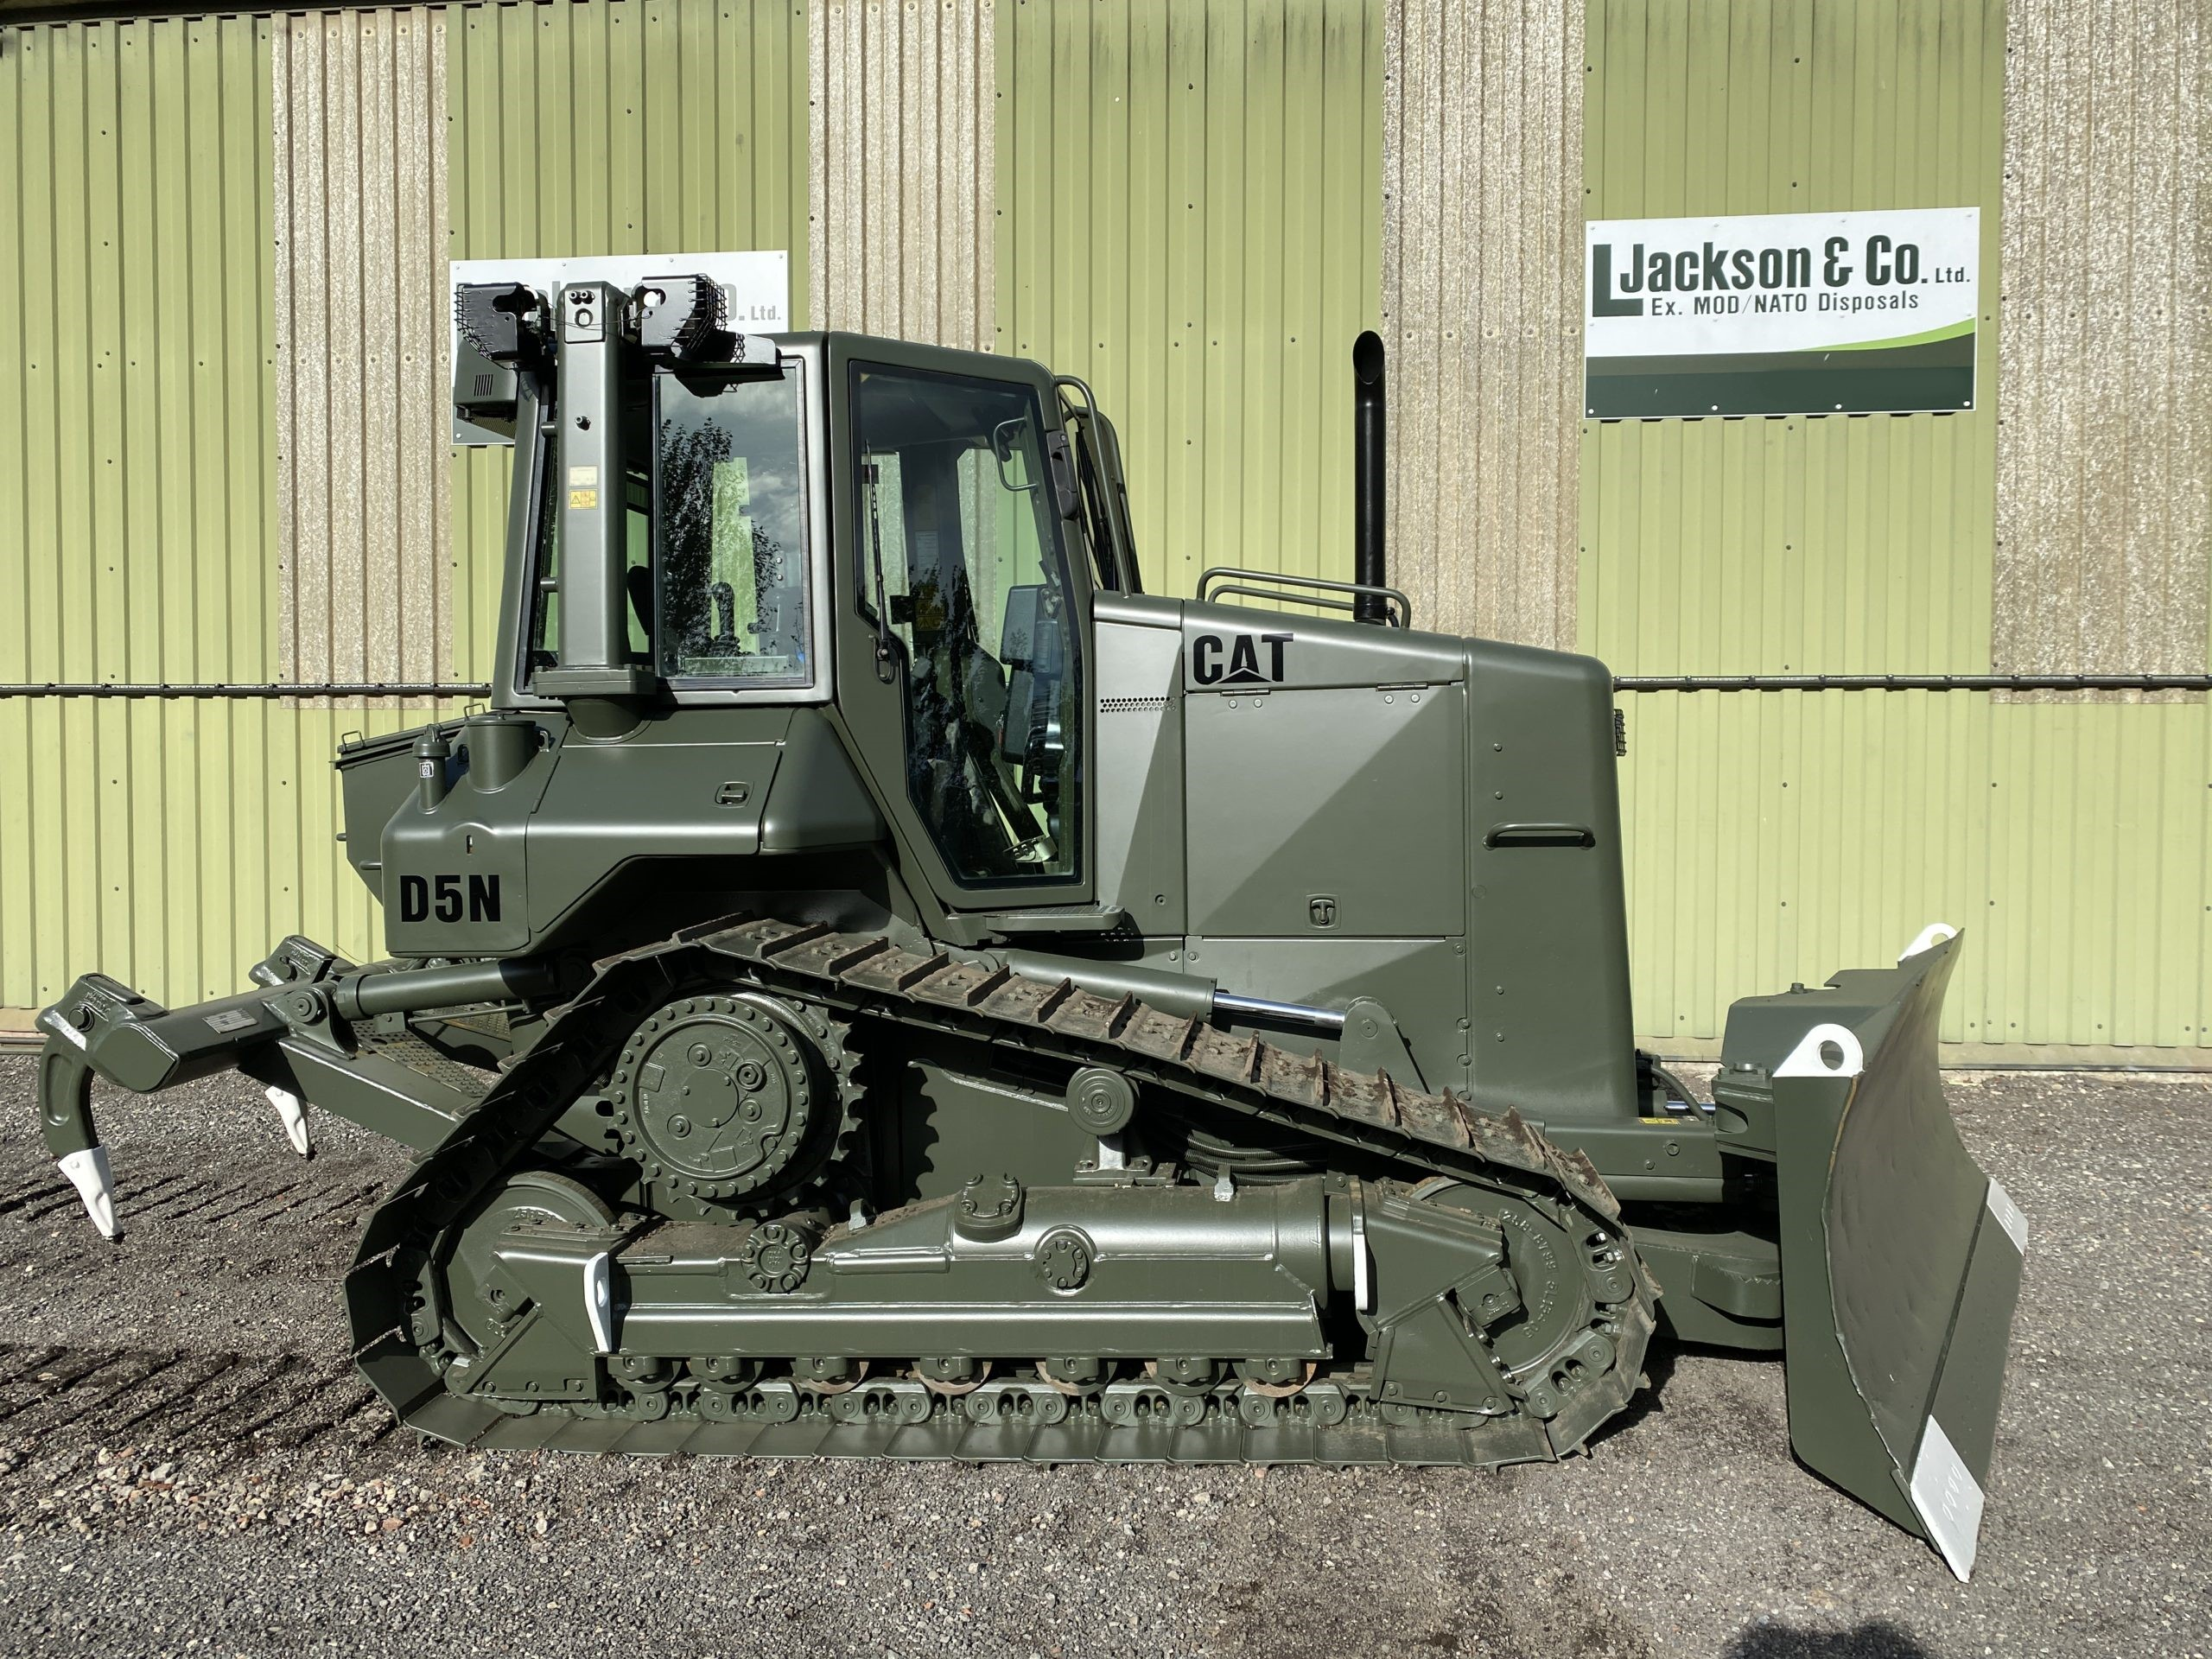 JUST ARRIVED Cat D5N XL Dozer with ripper